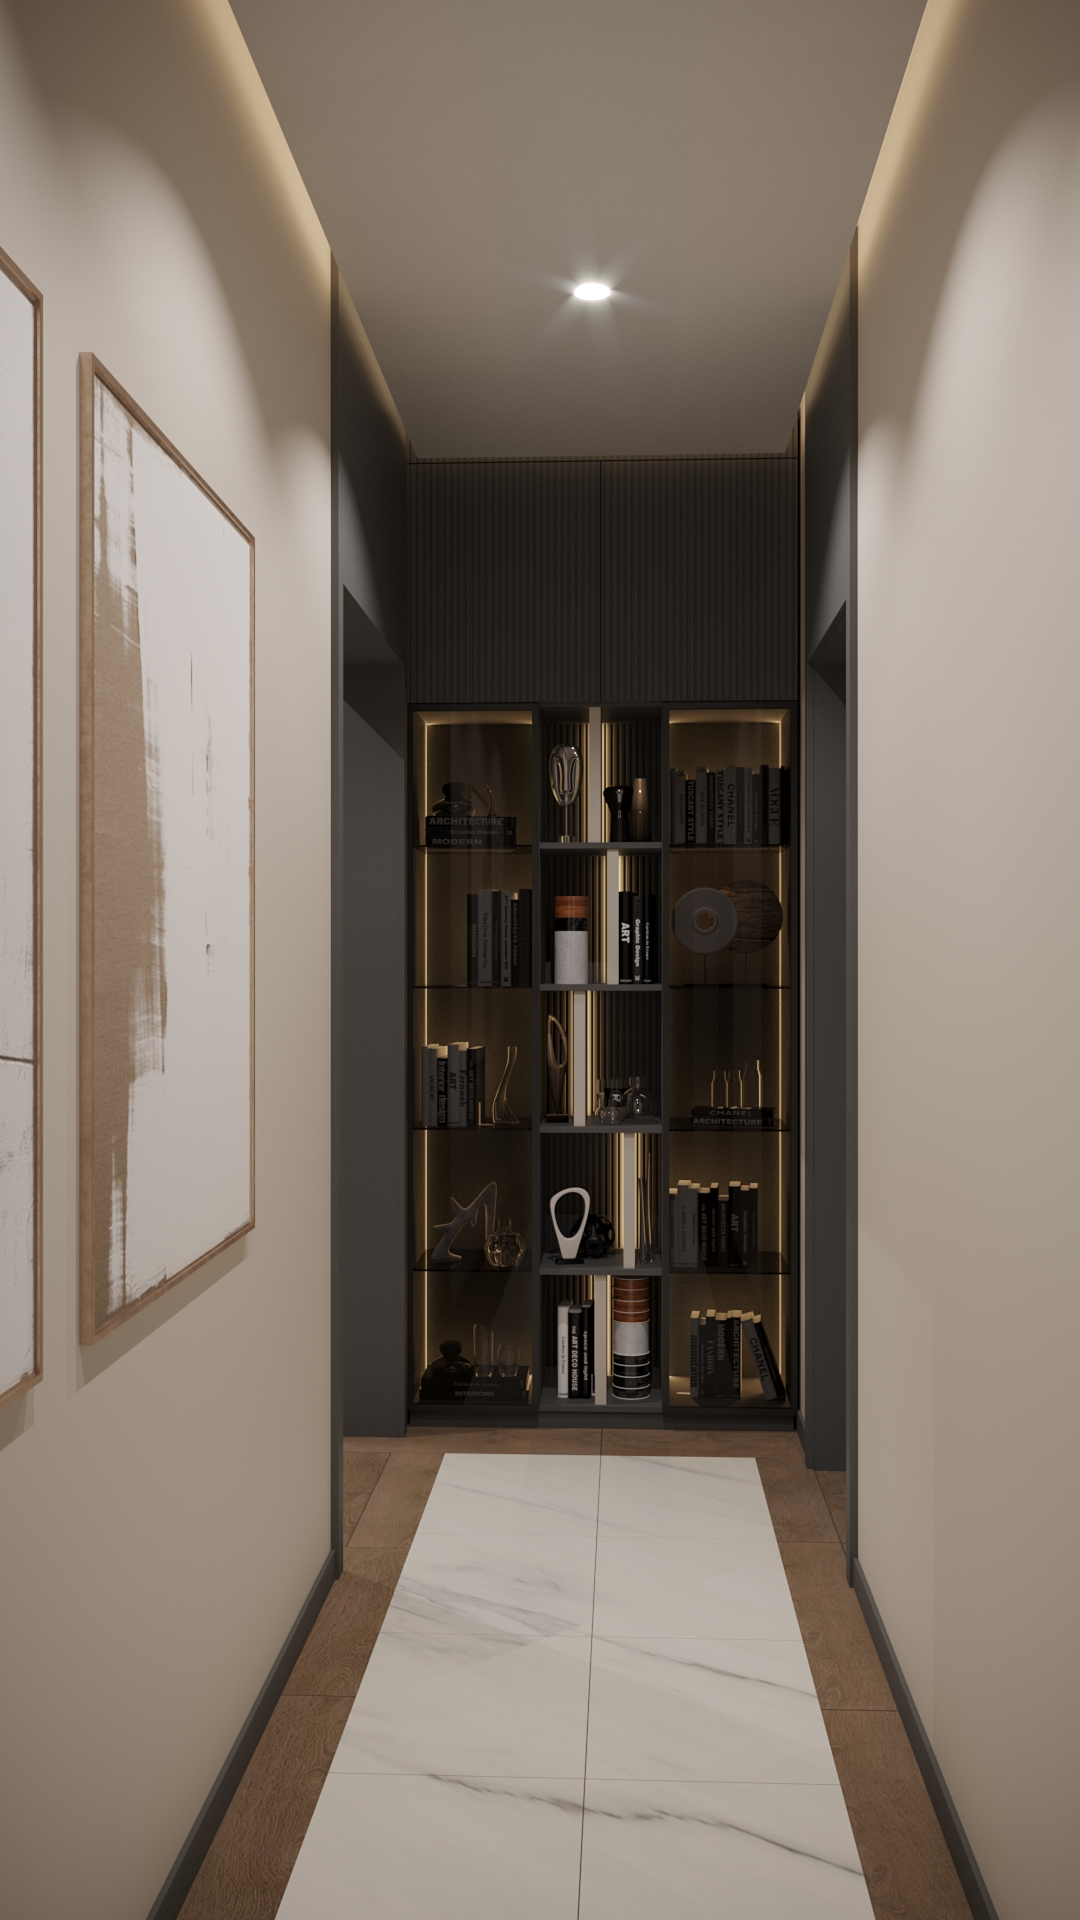 LuxeHome_Hallway_003